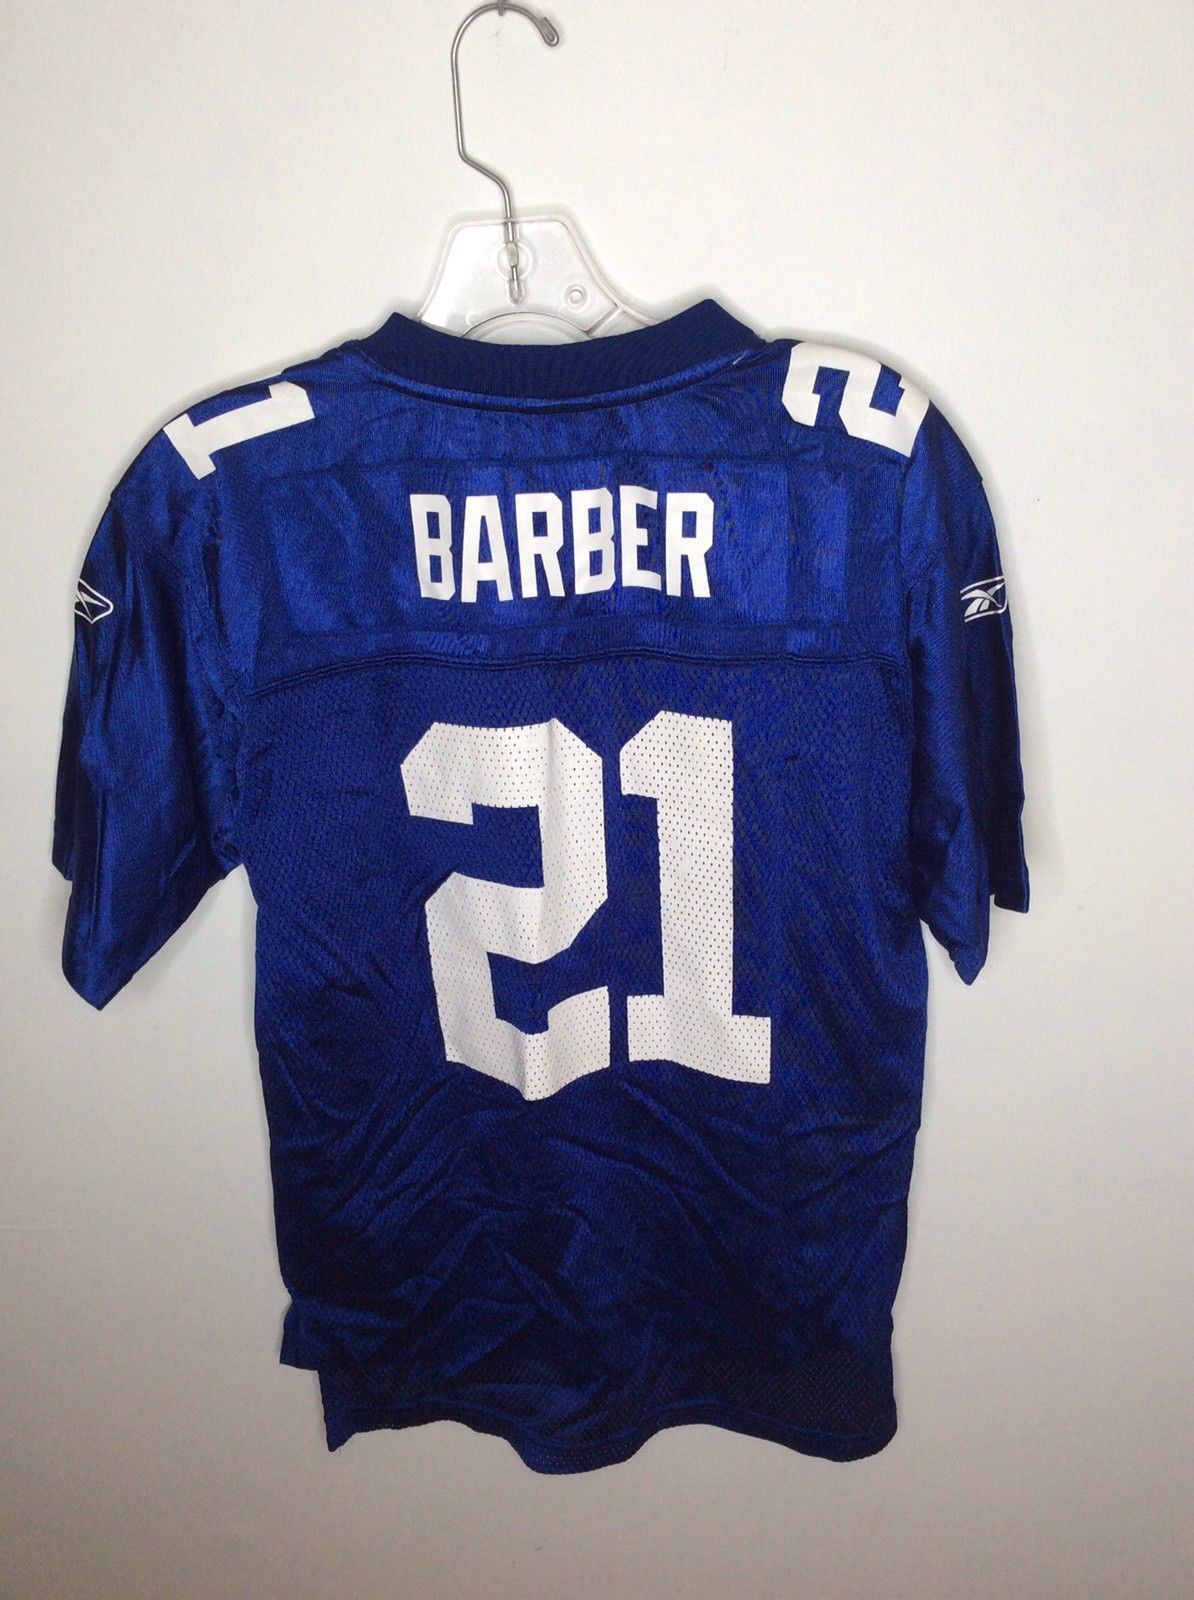 Reebok NFL New York Giants 21 Tiki Barber Football Jersey Blue Youth Large 14-16 image 2